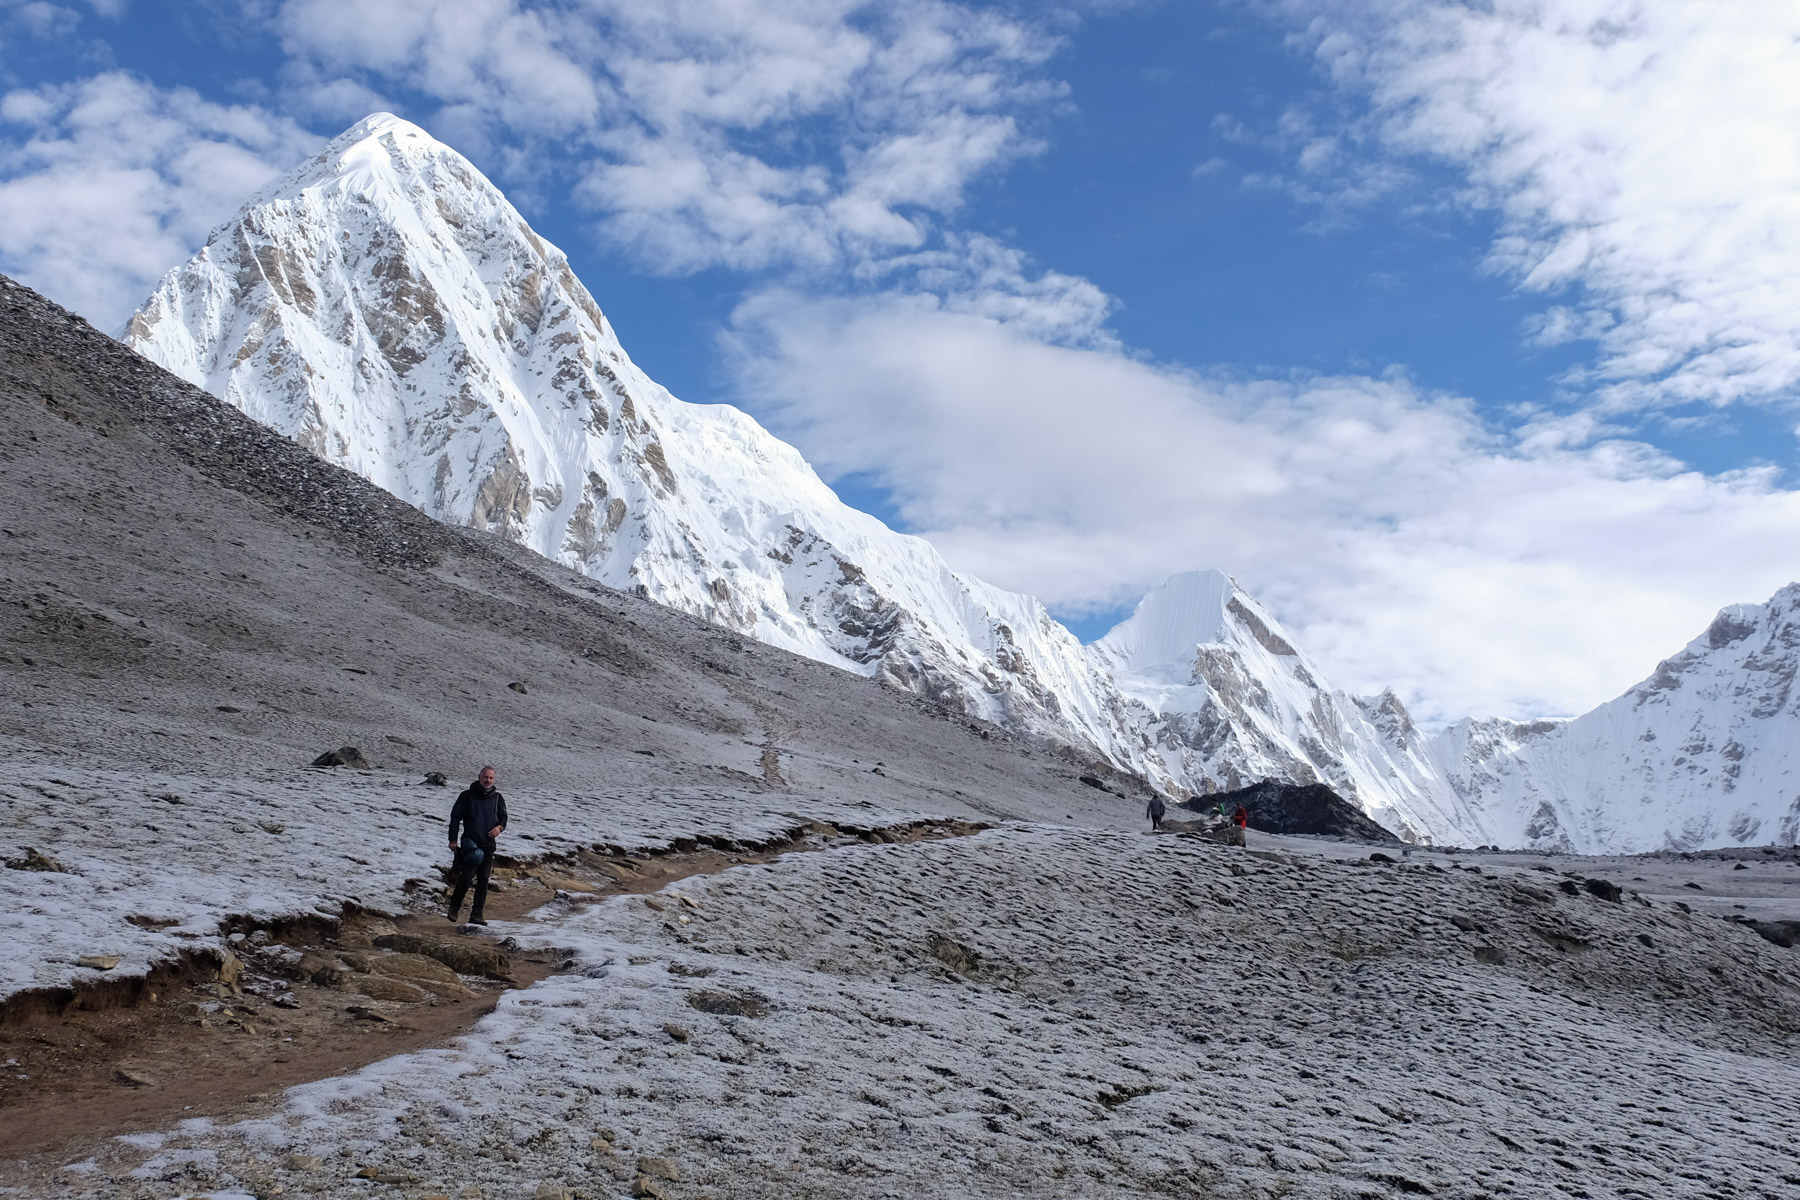 Kala Patthar & Gokyo, Everest 3 pass #3 17